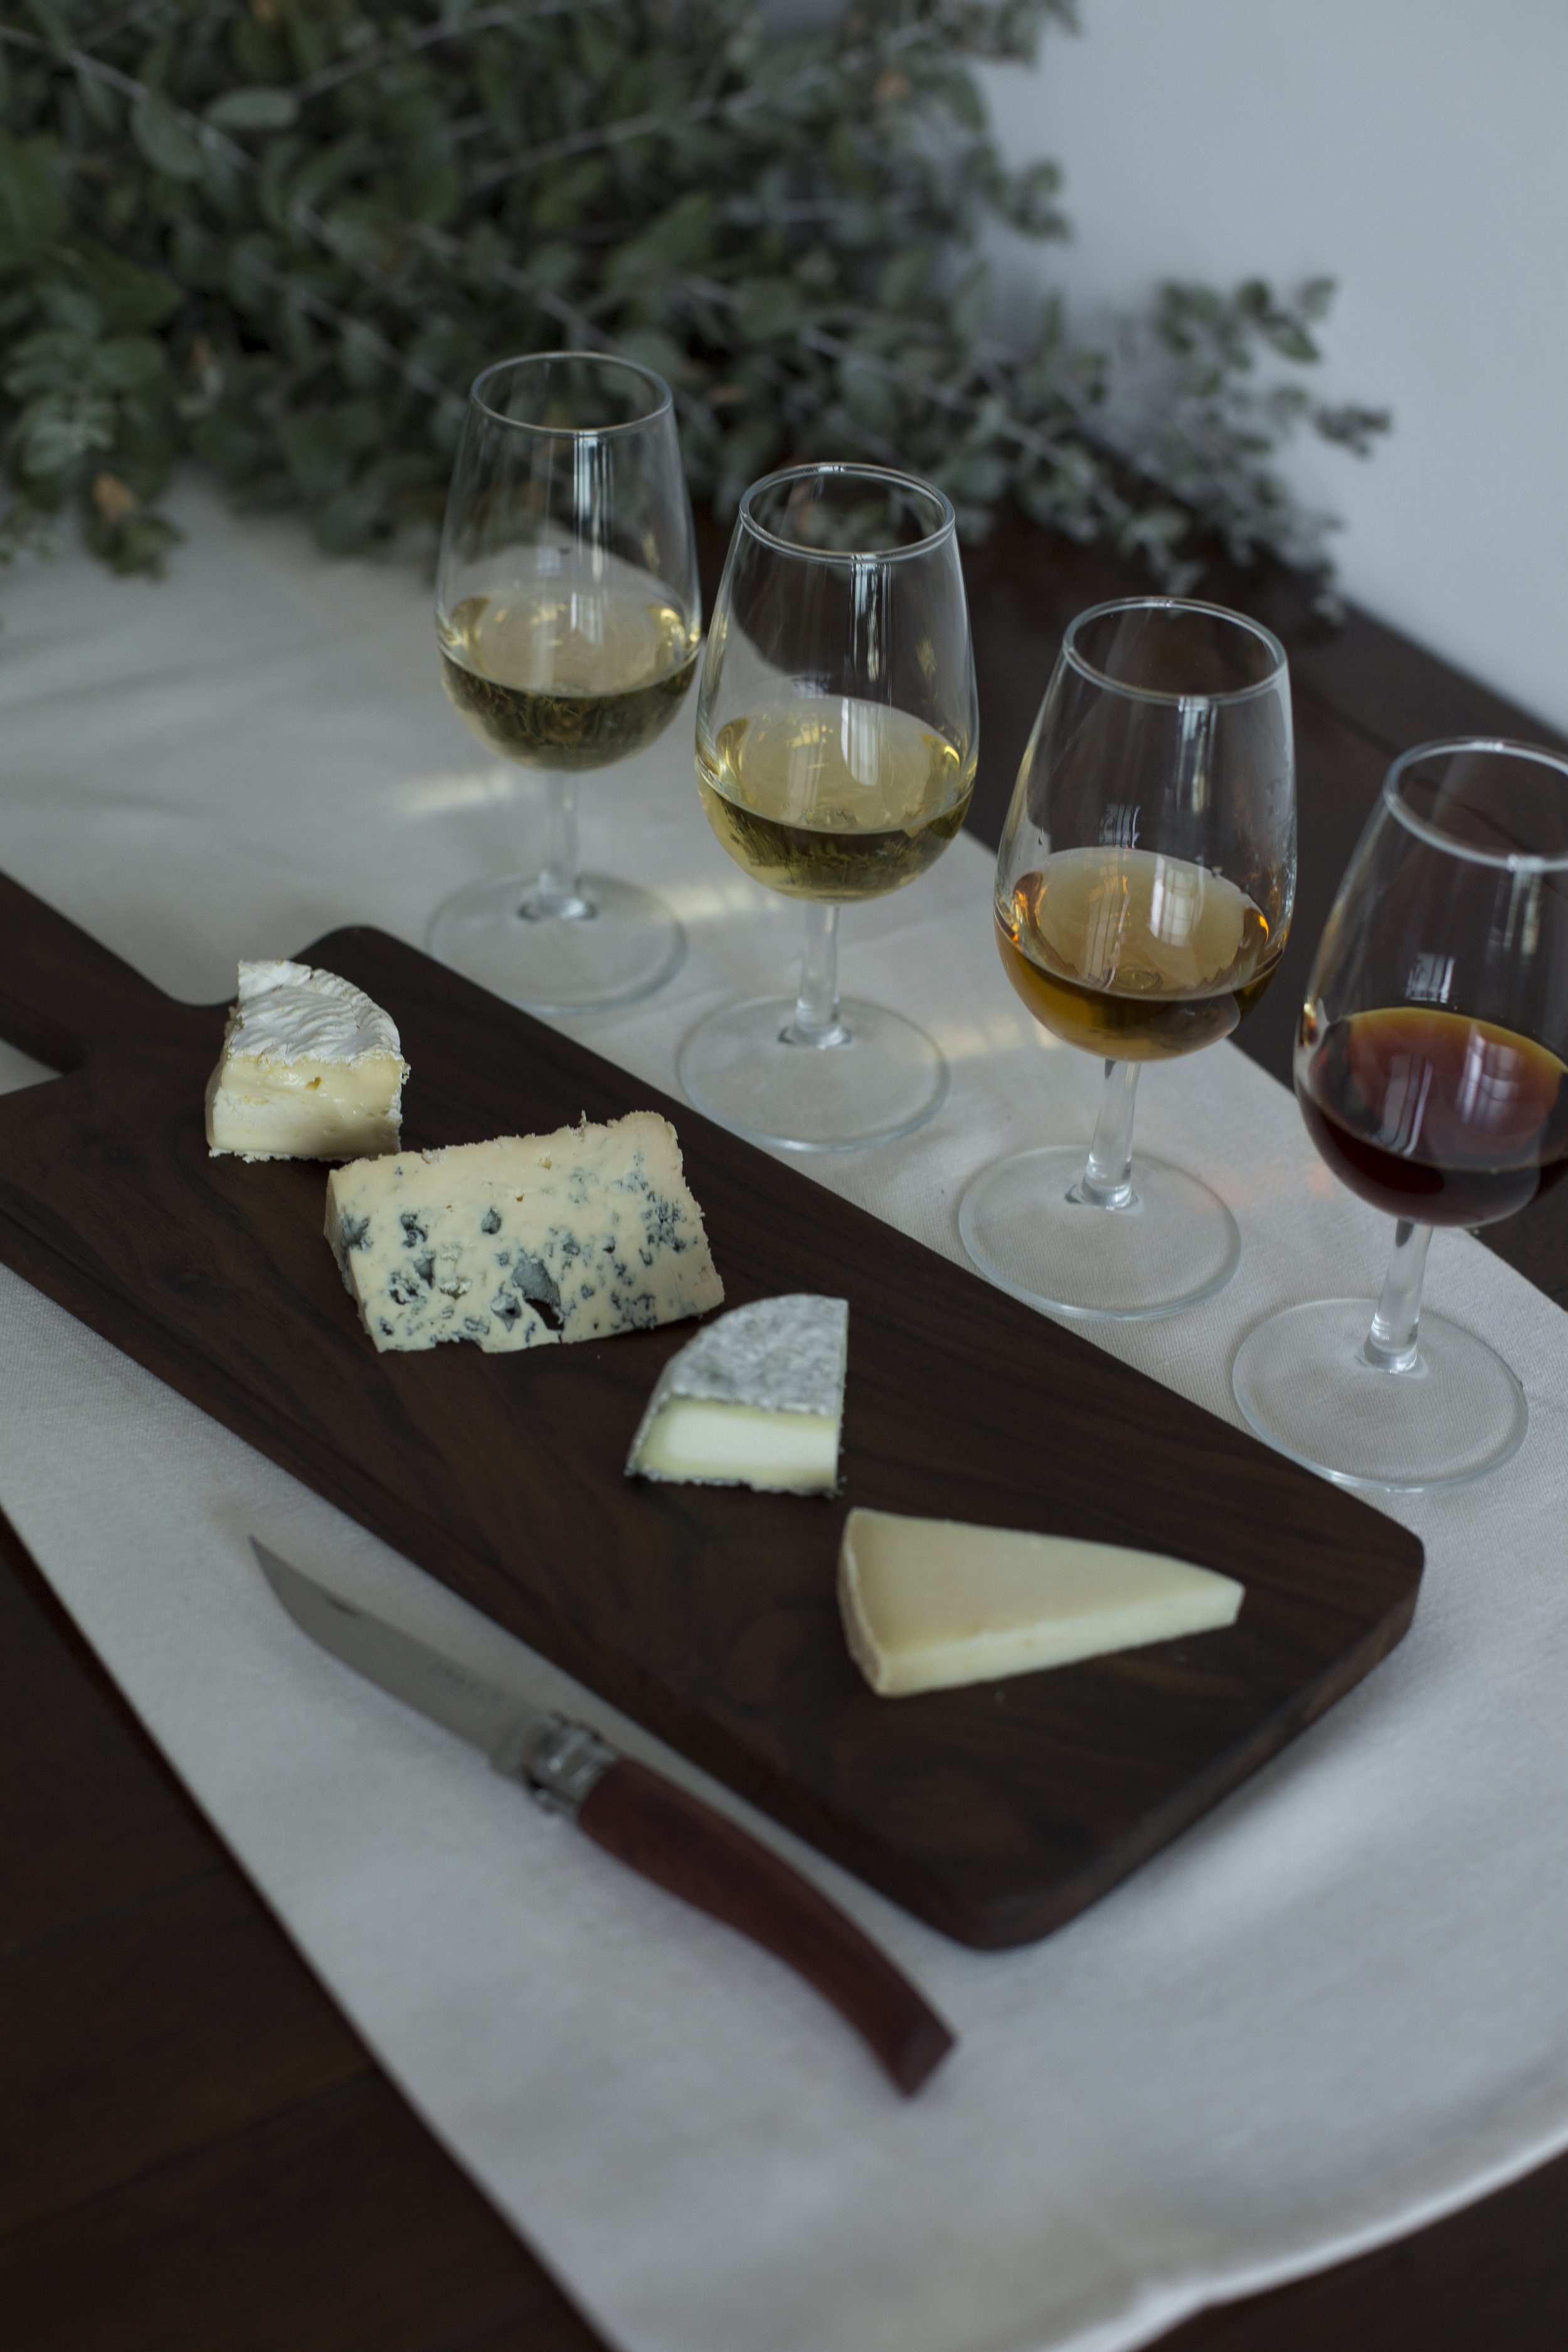 4 Cheese & Wine tasting selection